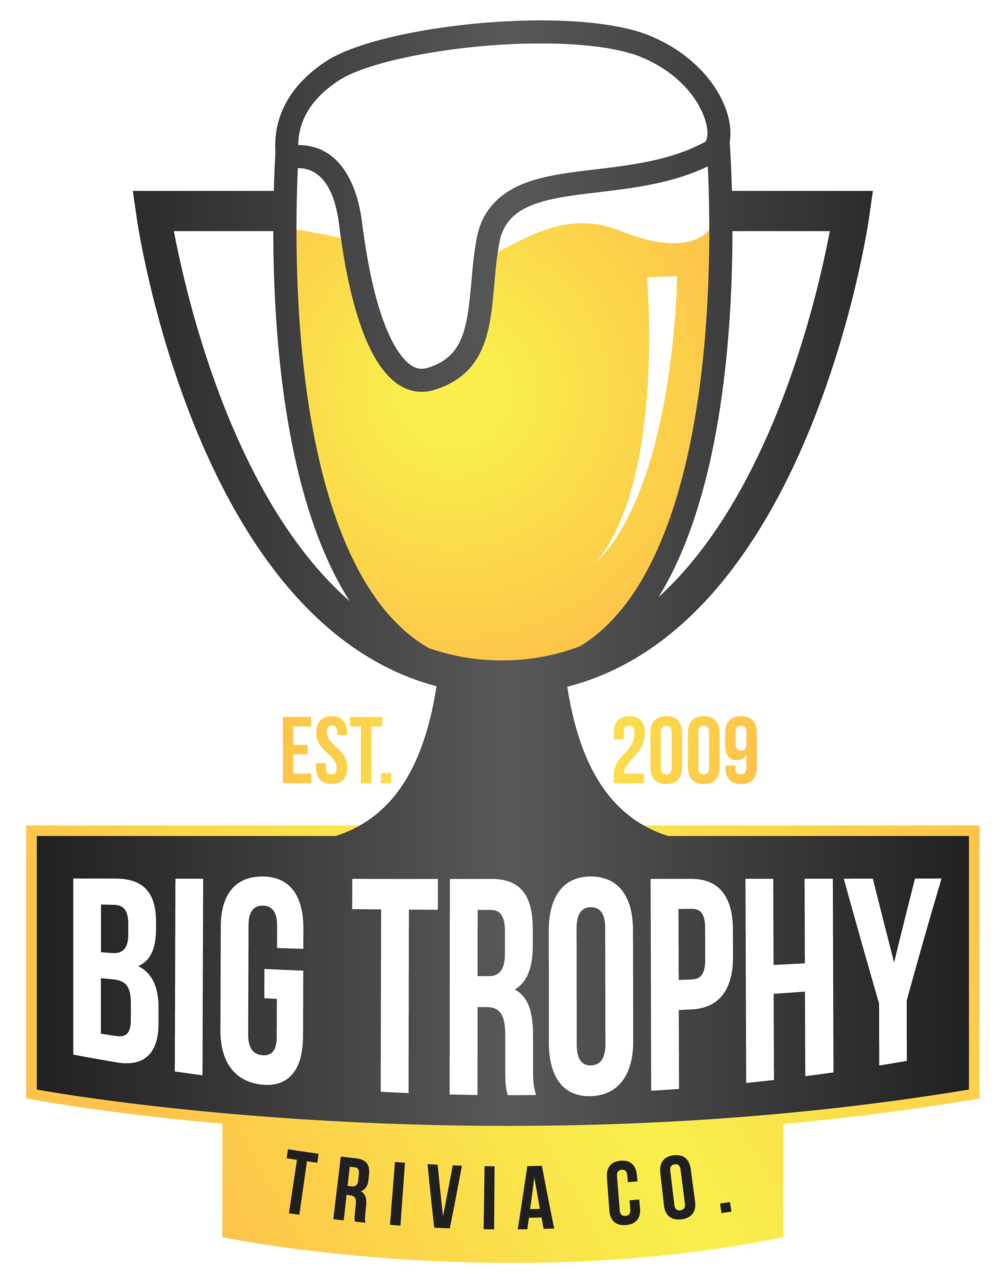 Big Trophy Trivia Co.